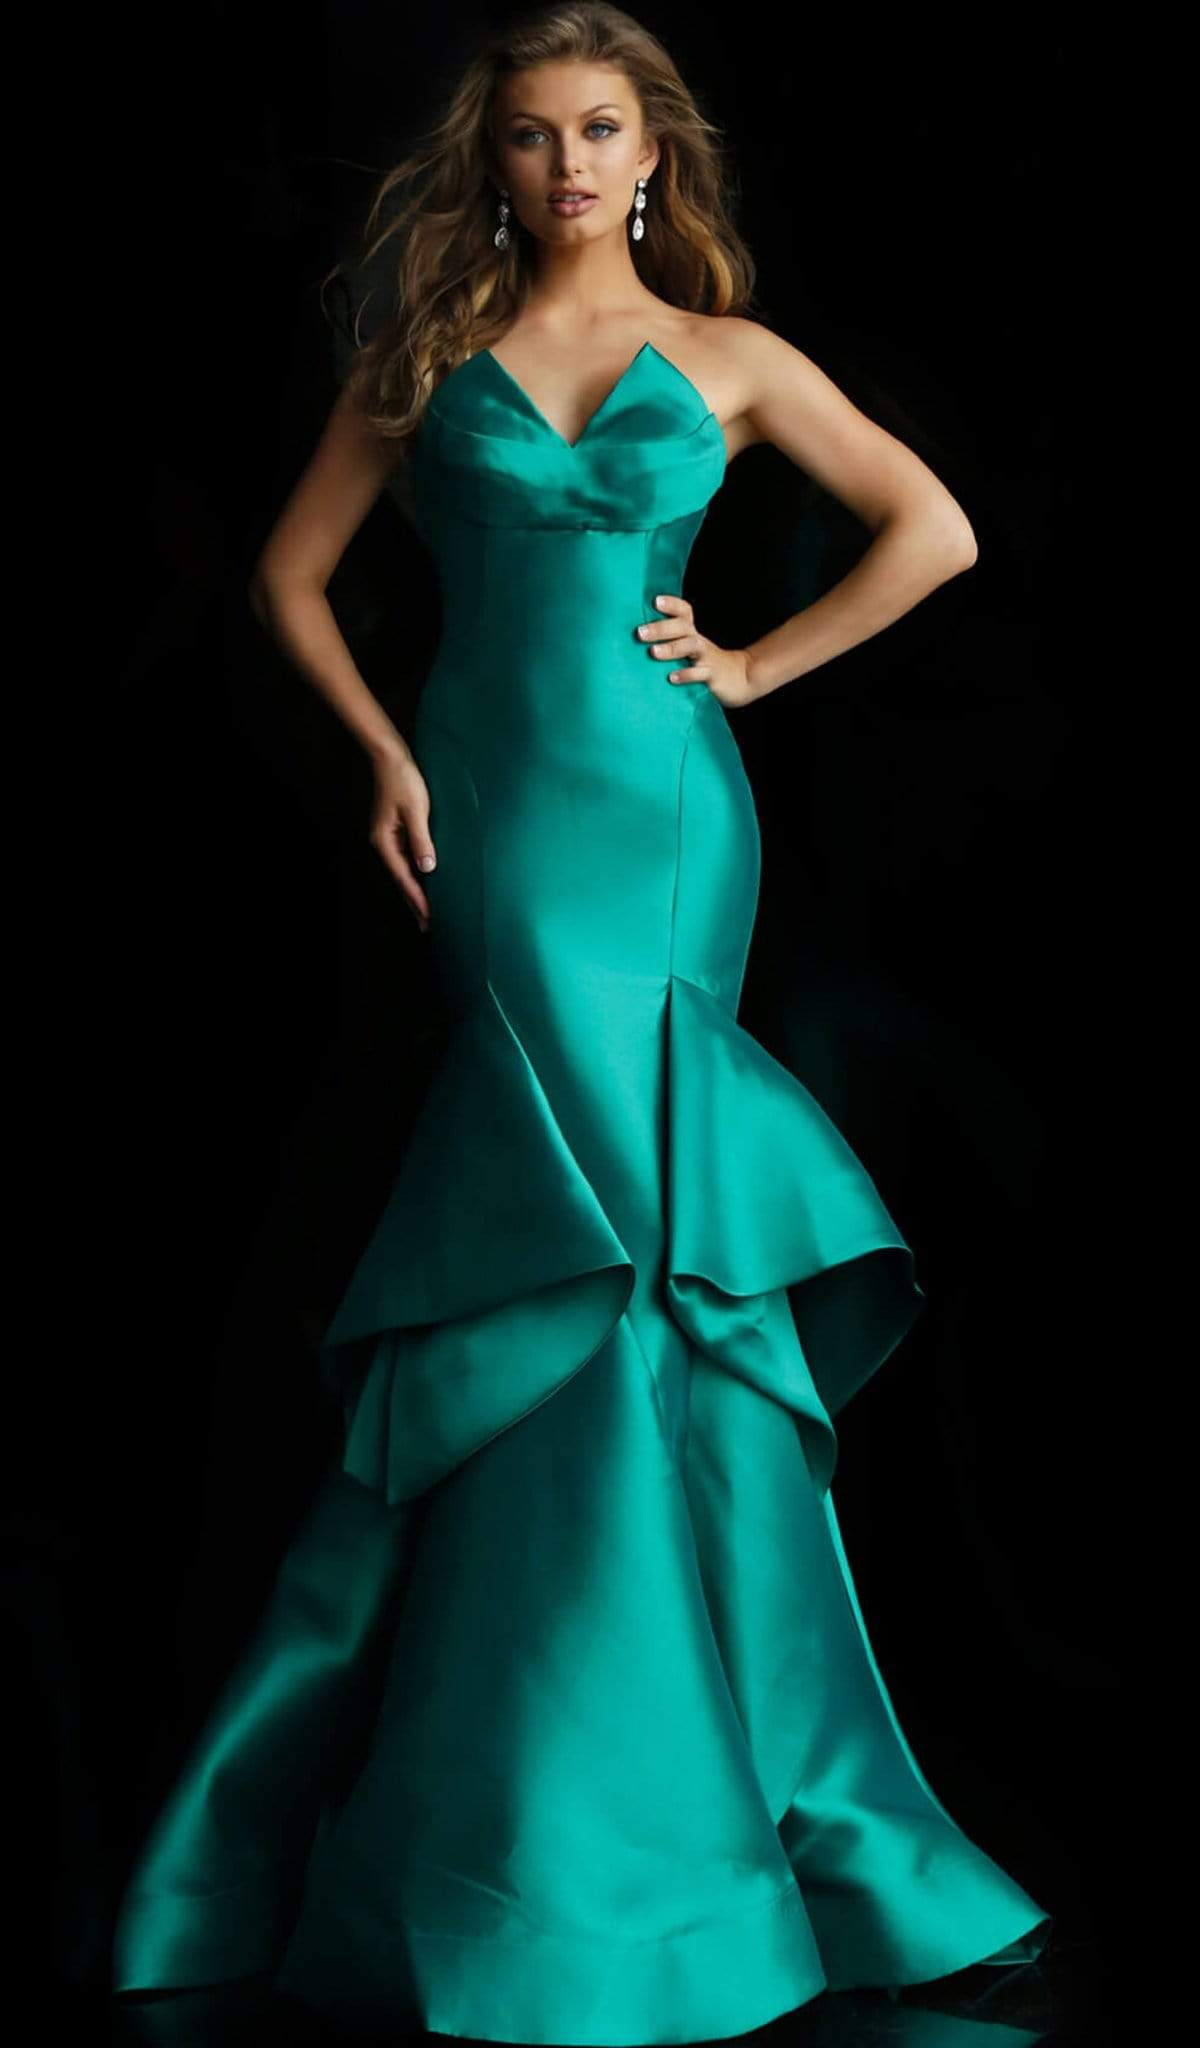 Jovani - 61377 Strapless V Neck Tiered Ruffle Mermaid Gown Special Occasion Dress 00 / Green